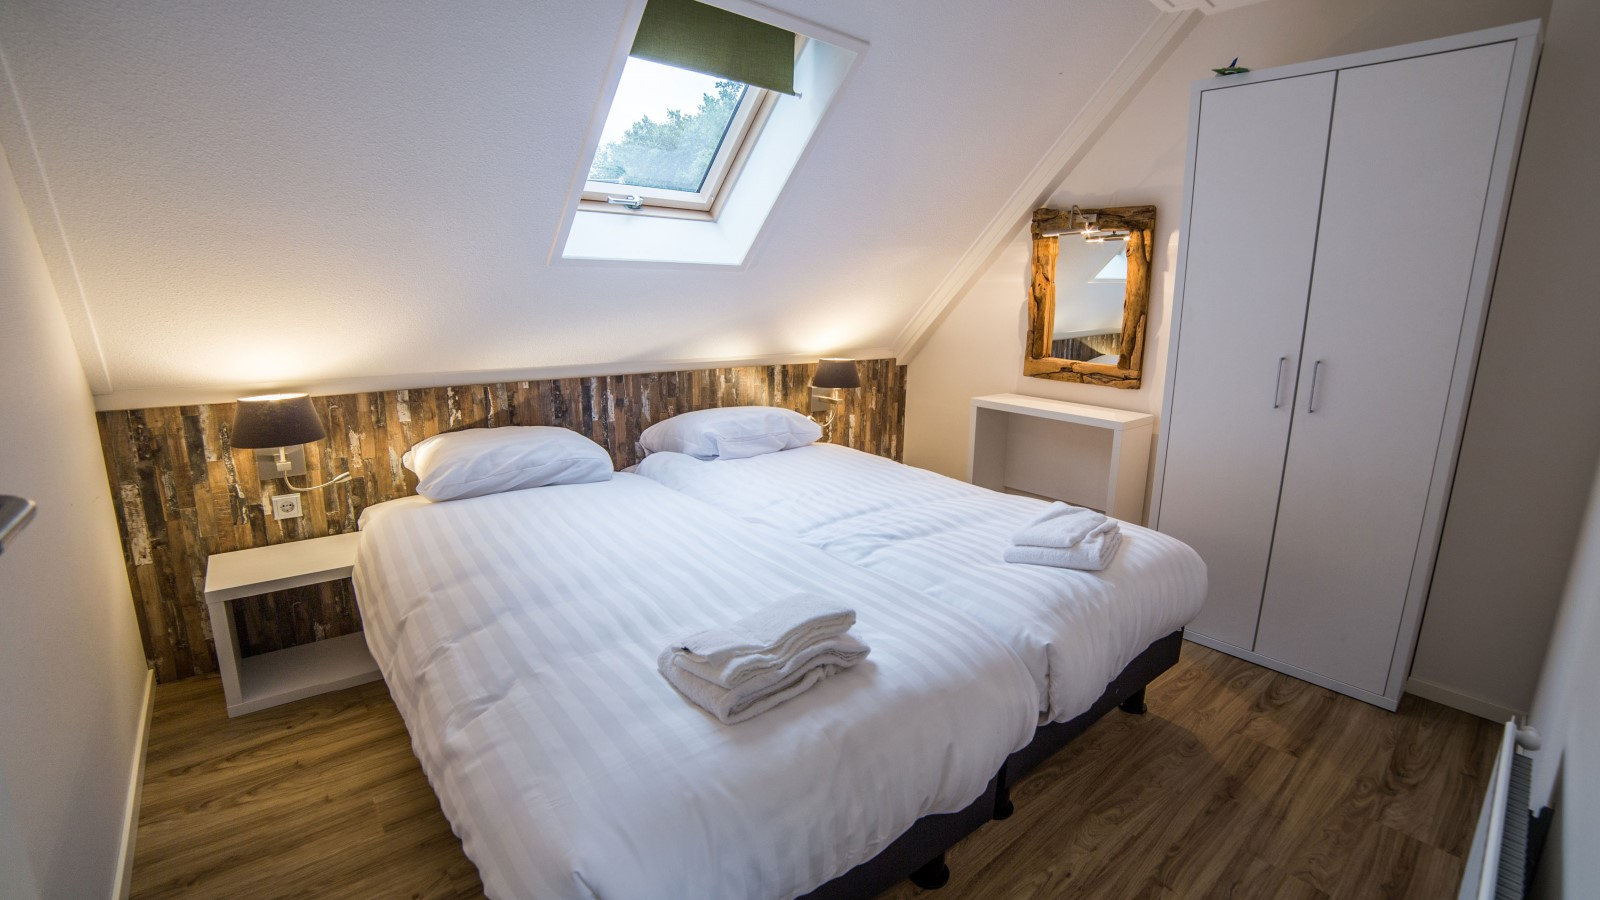 Boerenhoeve luxe - 10 chambres